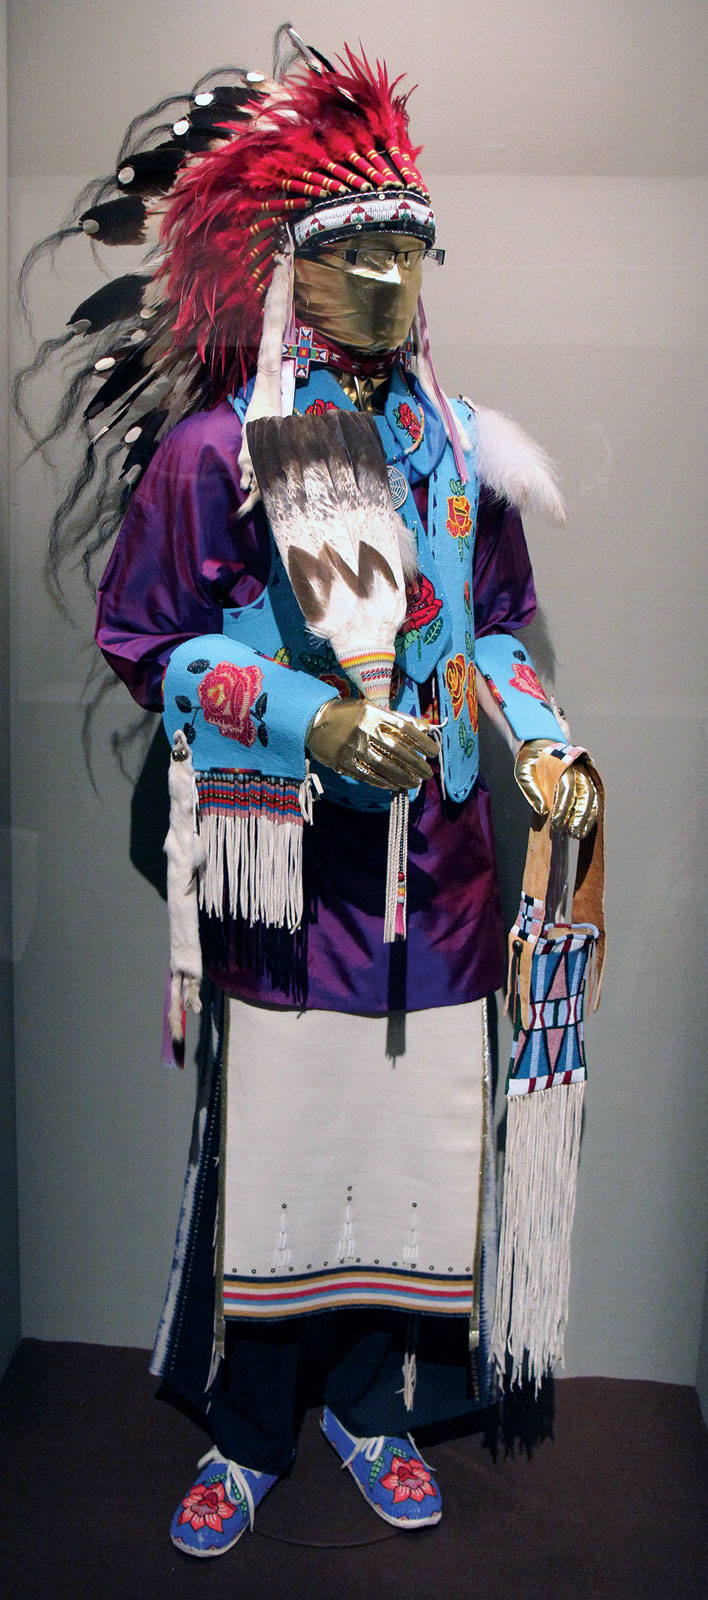 KEN WILLIAMS POWWOW REGALIA, consisting of headdress, choker, vest, collar, tie, belt, shirt, breechcloth, leggings, beaded mirror bag, and Eagle tail fan that were provided by Williams's many friends. Williams is Northern Arapaho and Seneca.  Photograph by Ornament.